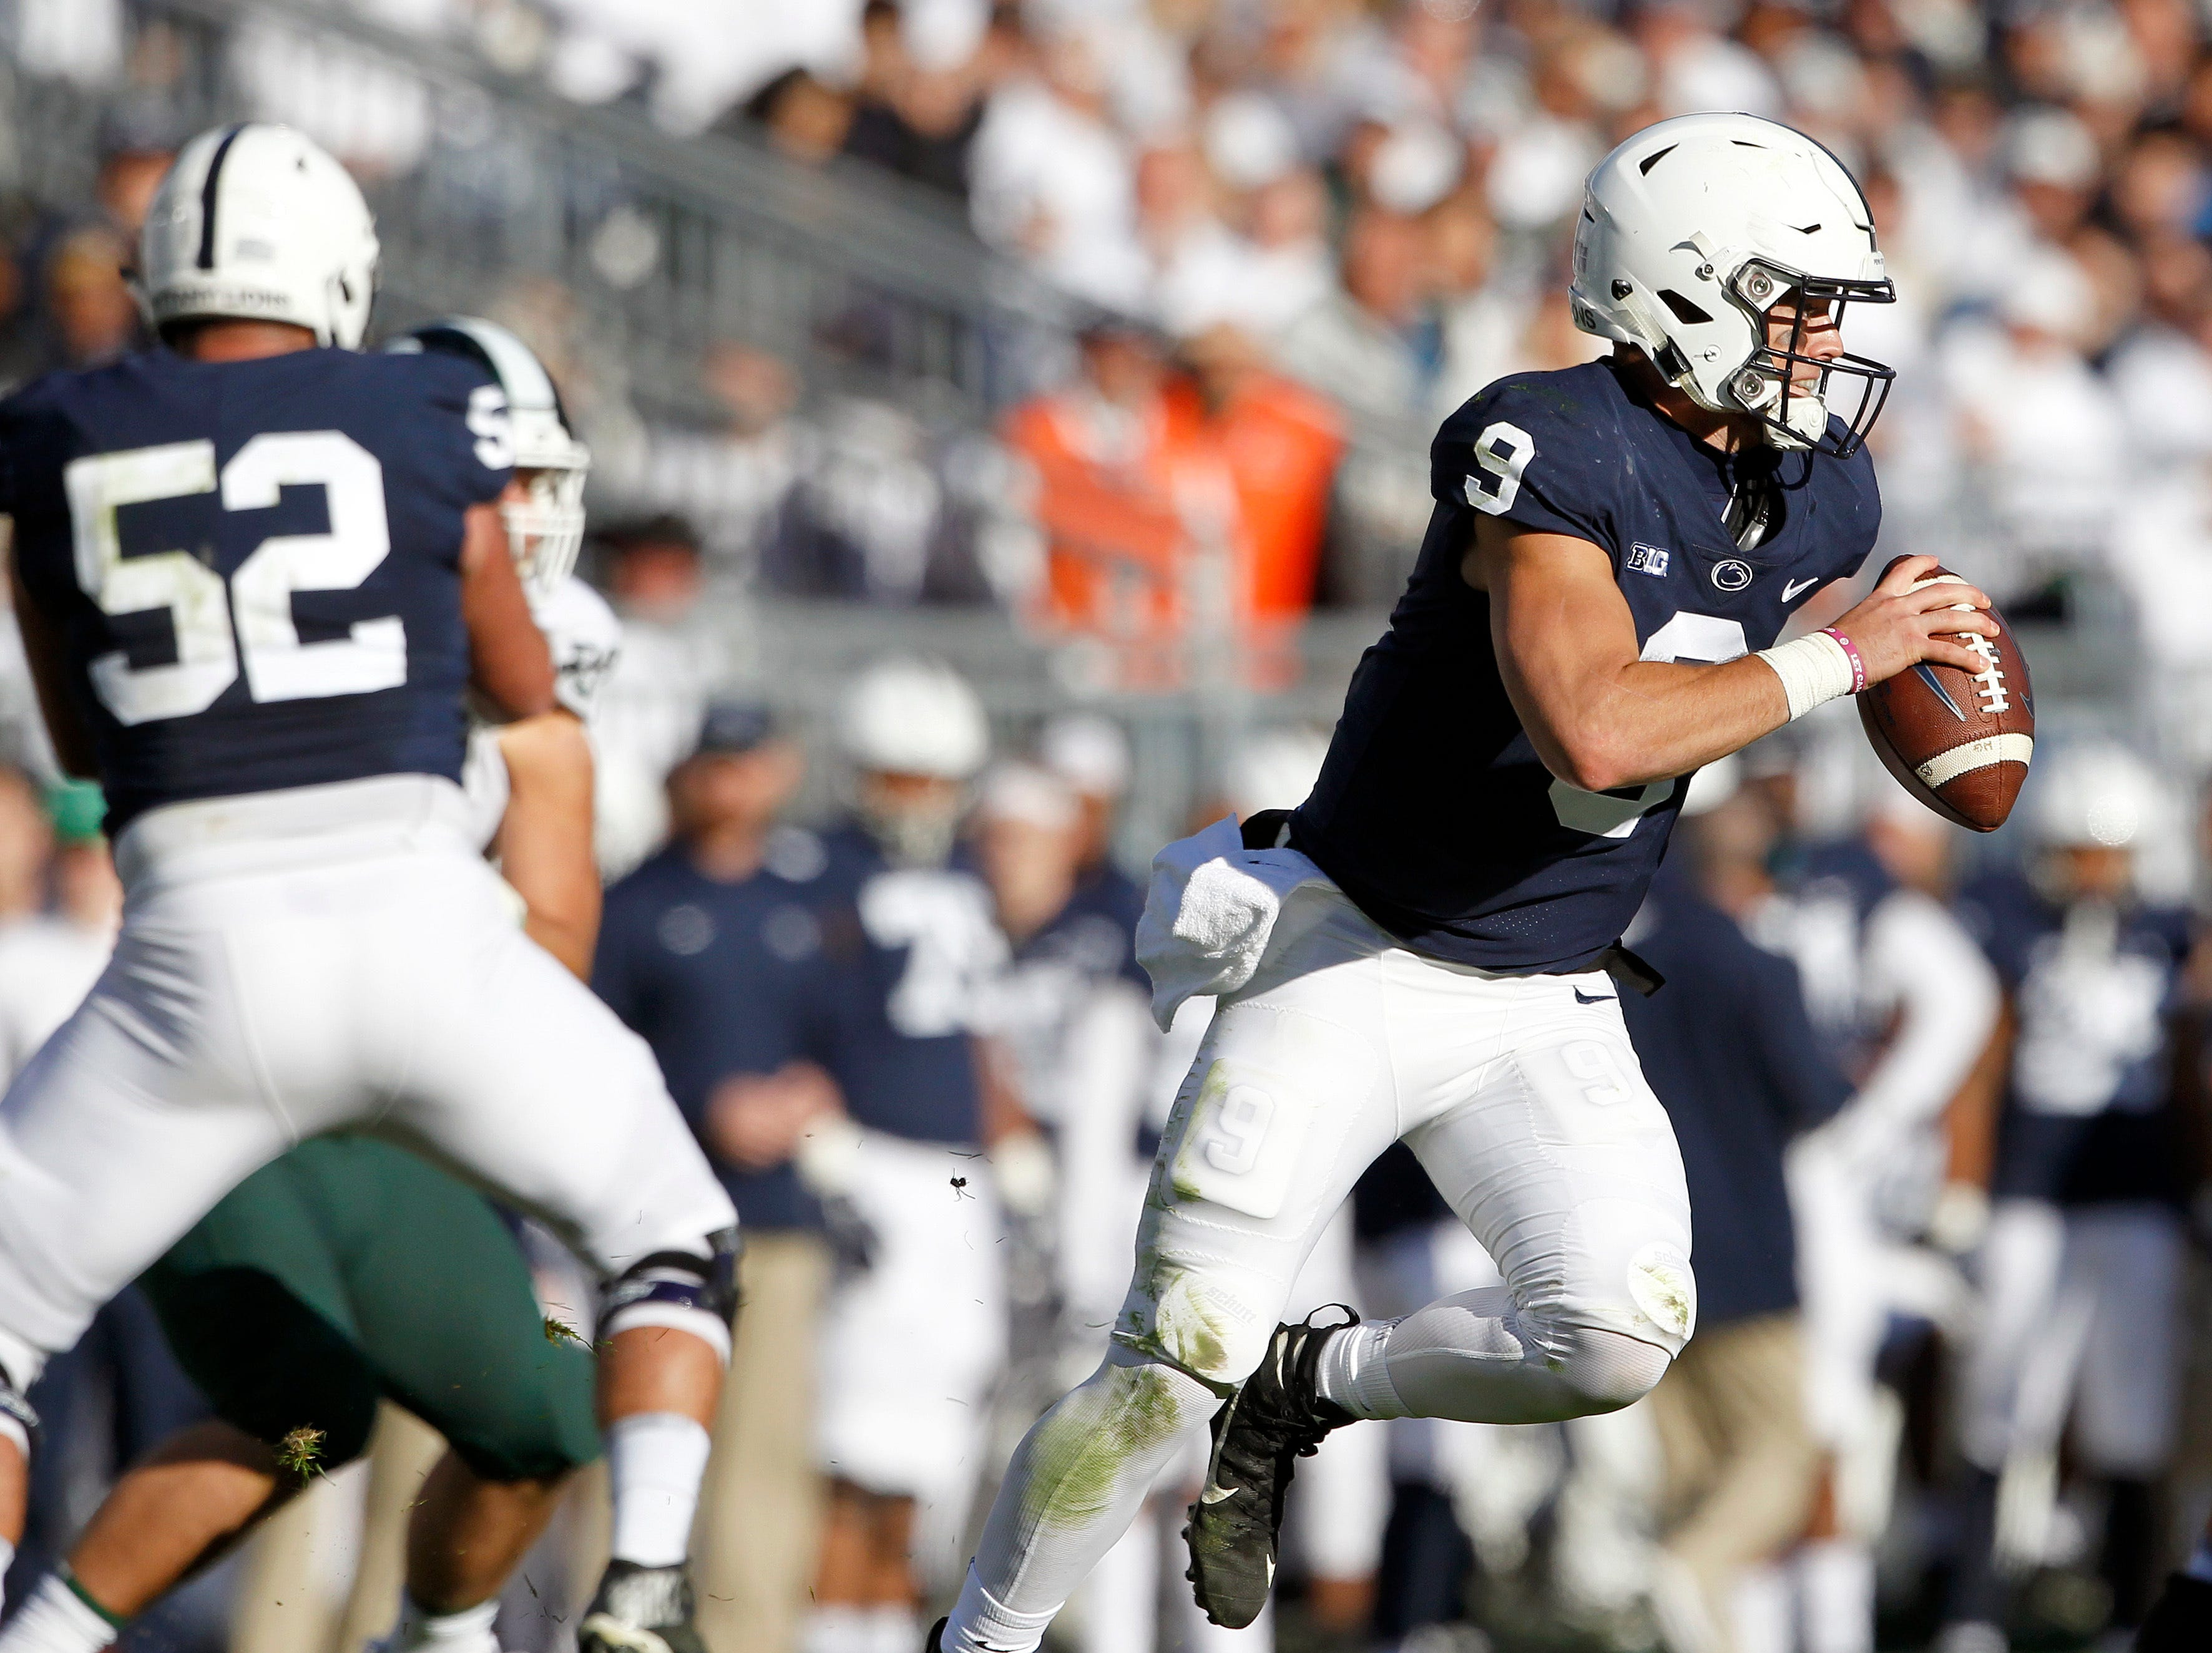 Penn State quarterback Trace McSorley rolls out of the pocket looking to pass.